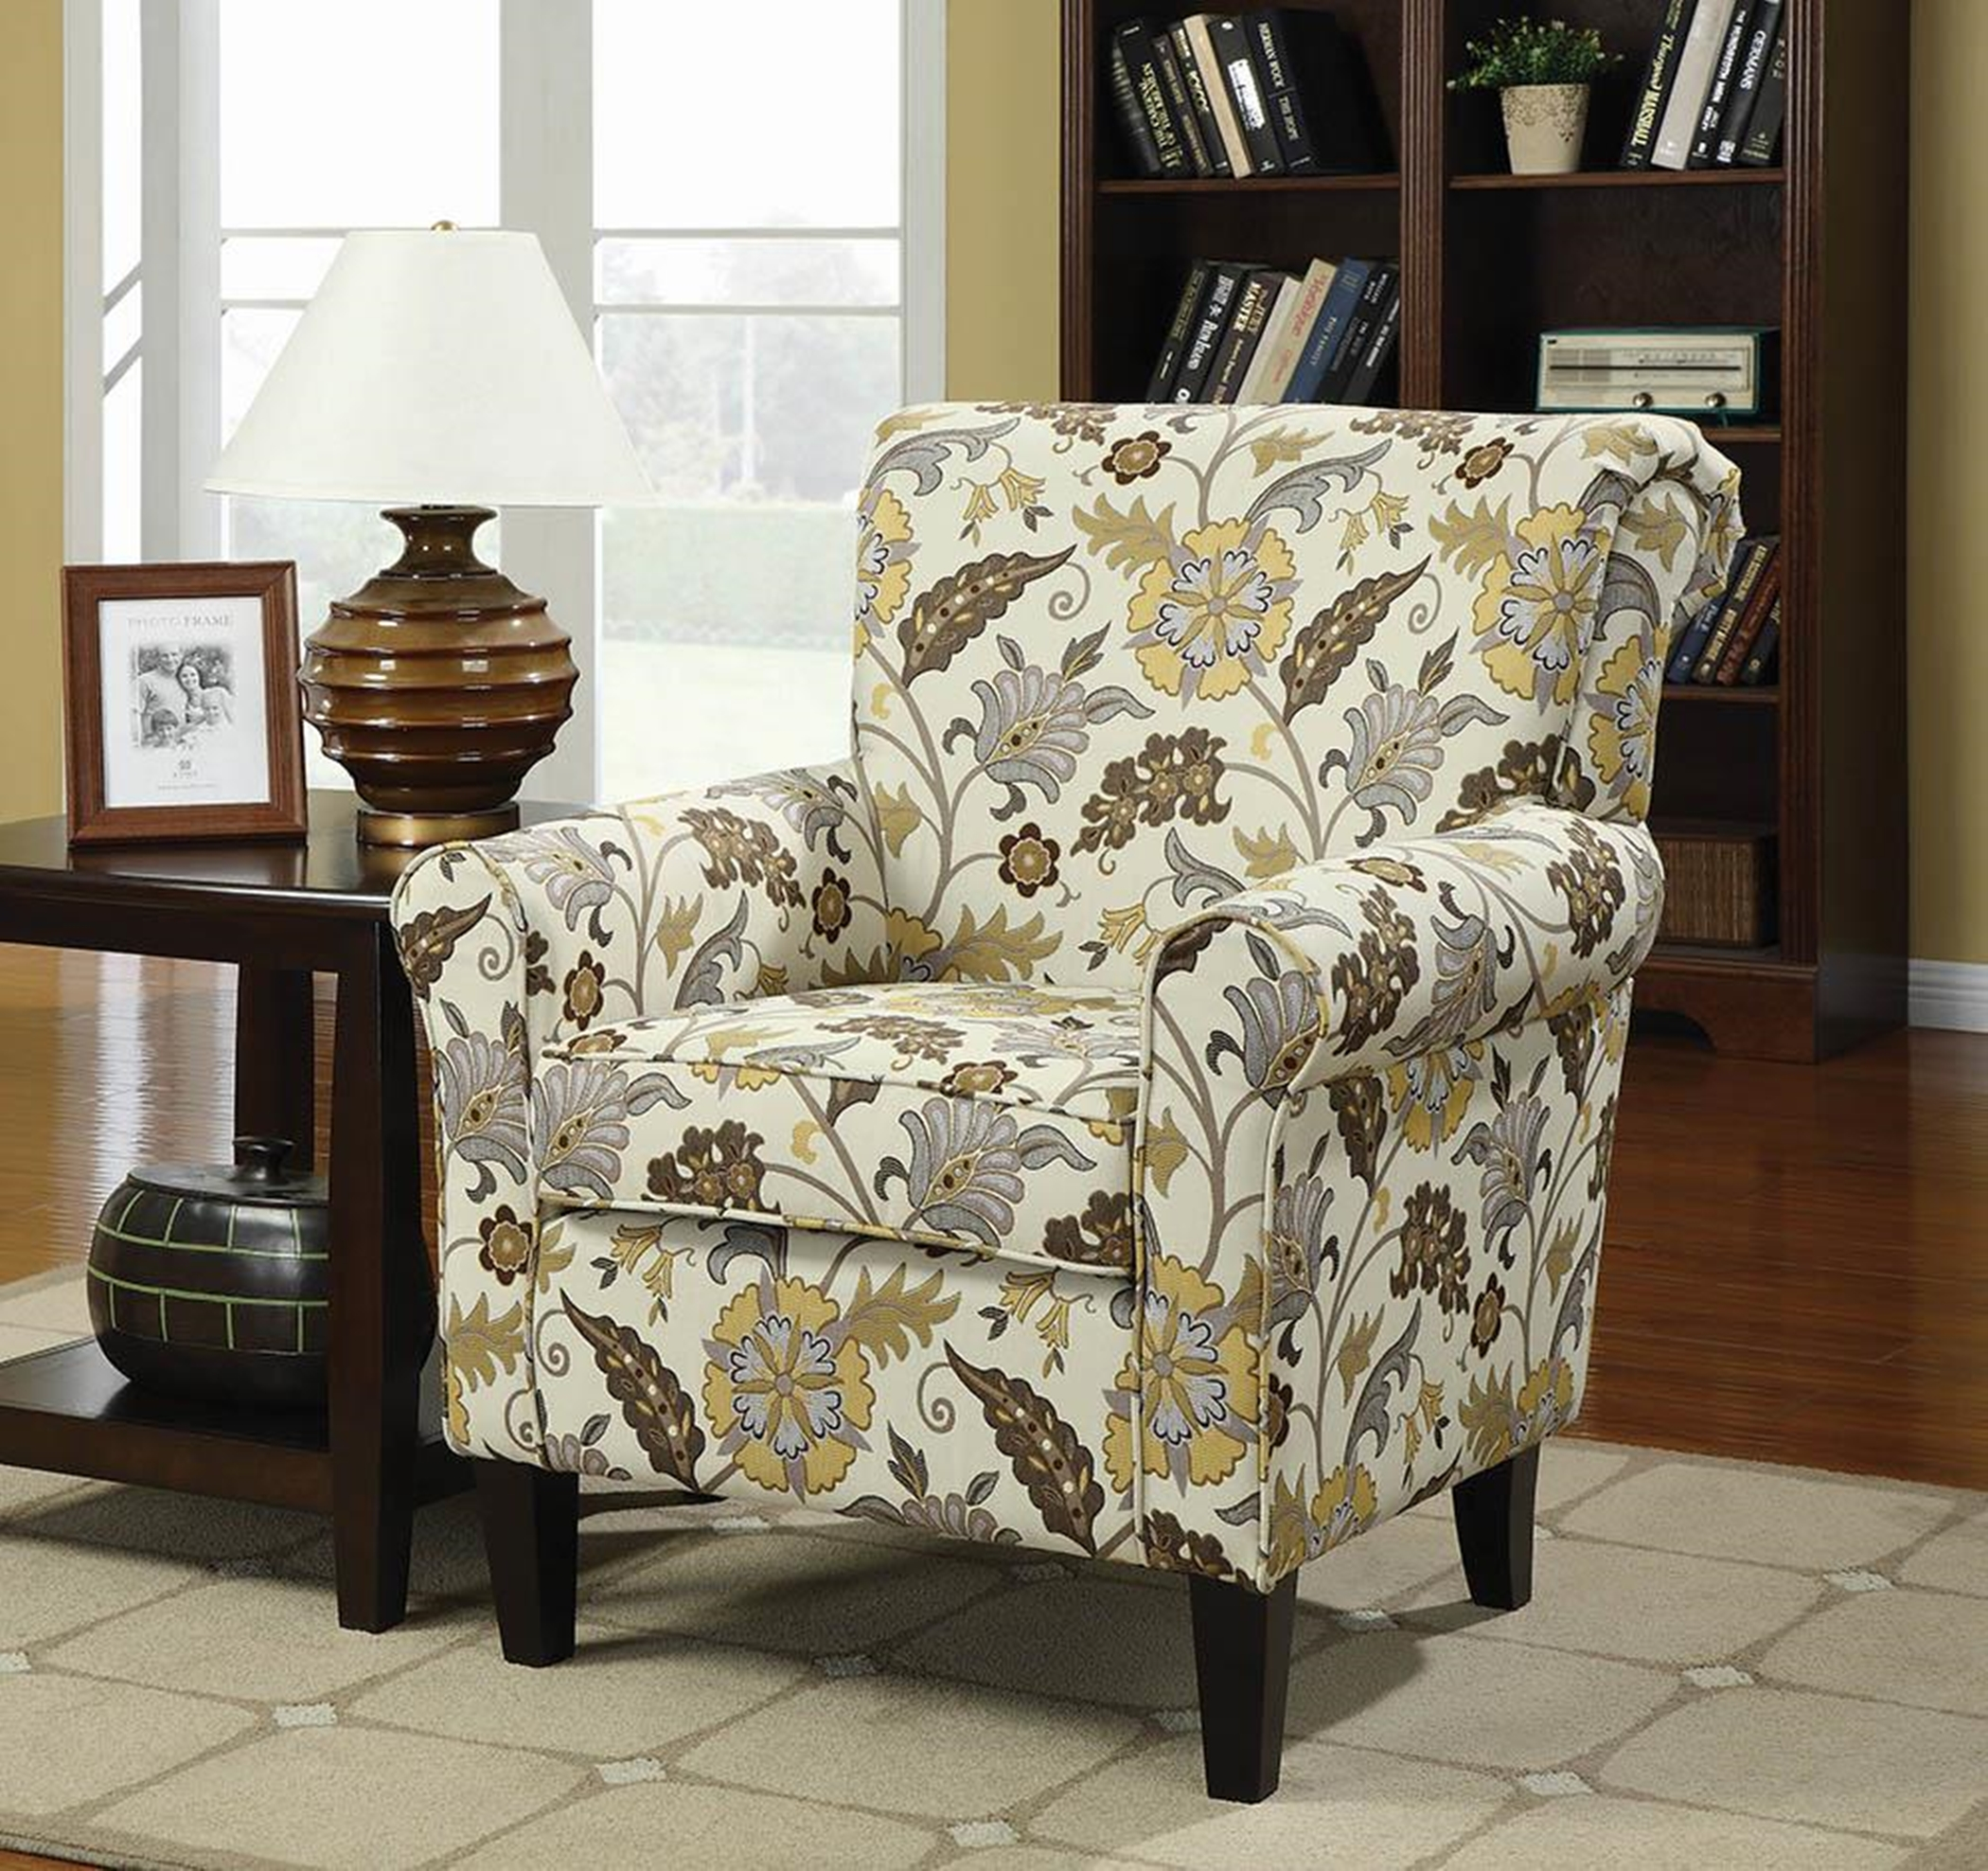 Casual Cream and Floral Accent Chair